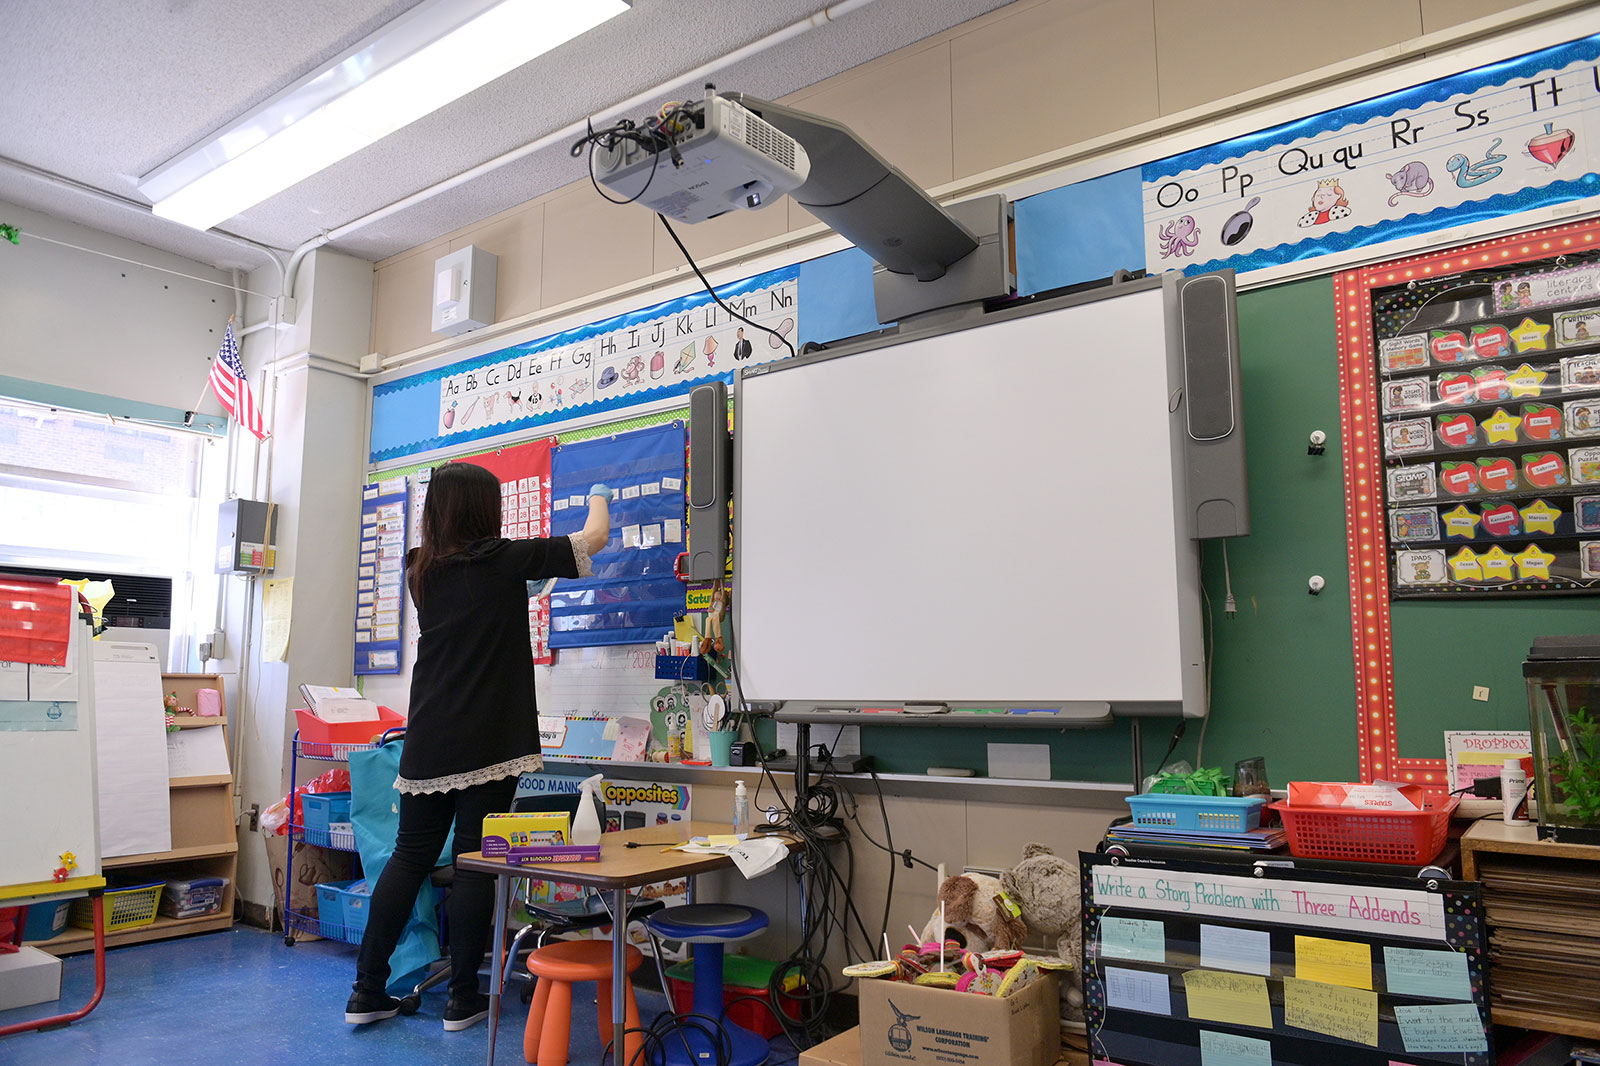 A teacher collects supplies from their classroom at P.S. 124 in New York City after the city's public schools shut down due to the coronavirus outbreak. New York City submitted its plan to reopen schools on Friday night.